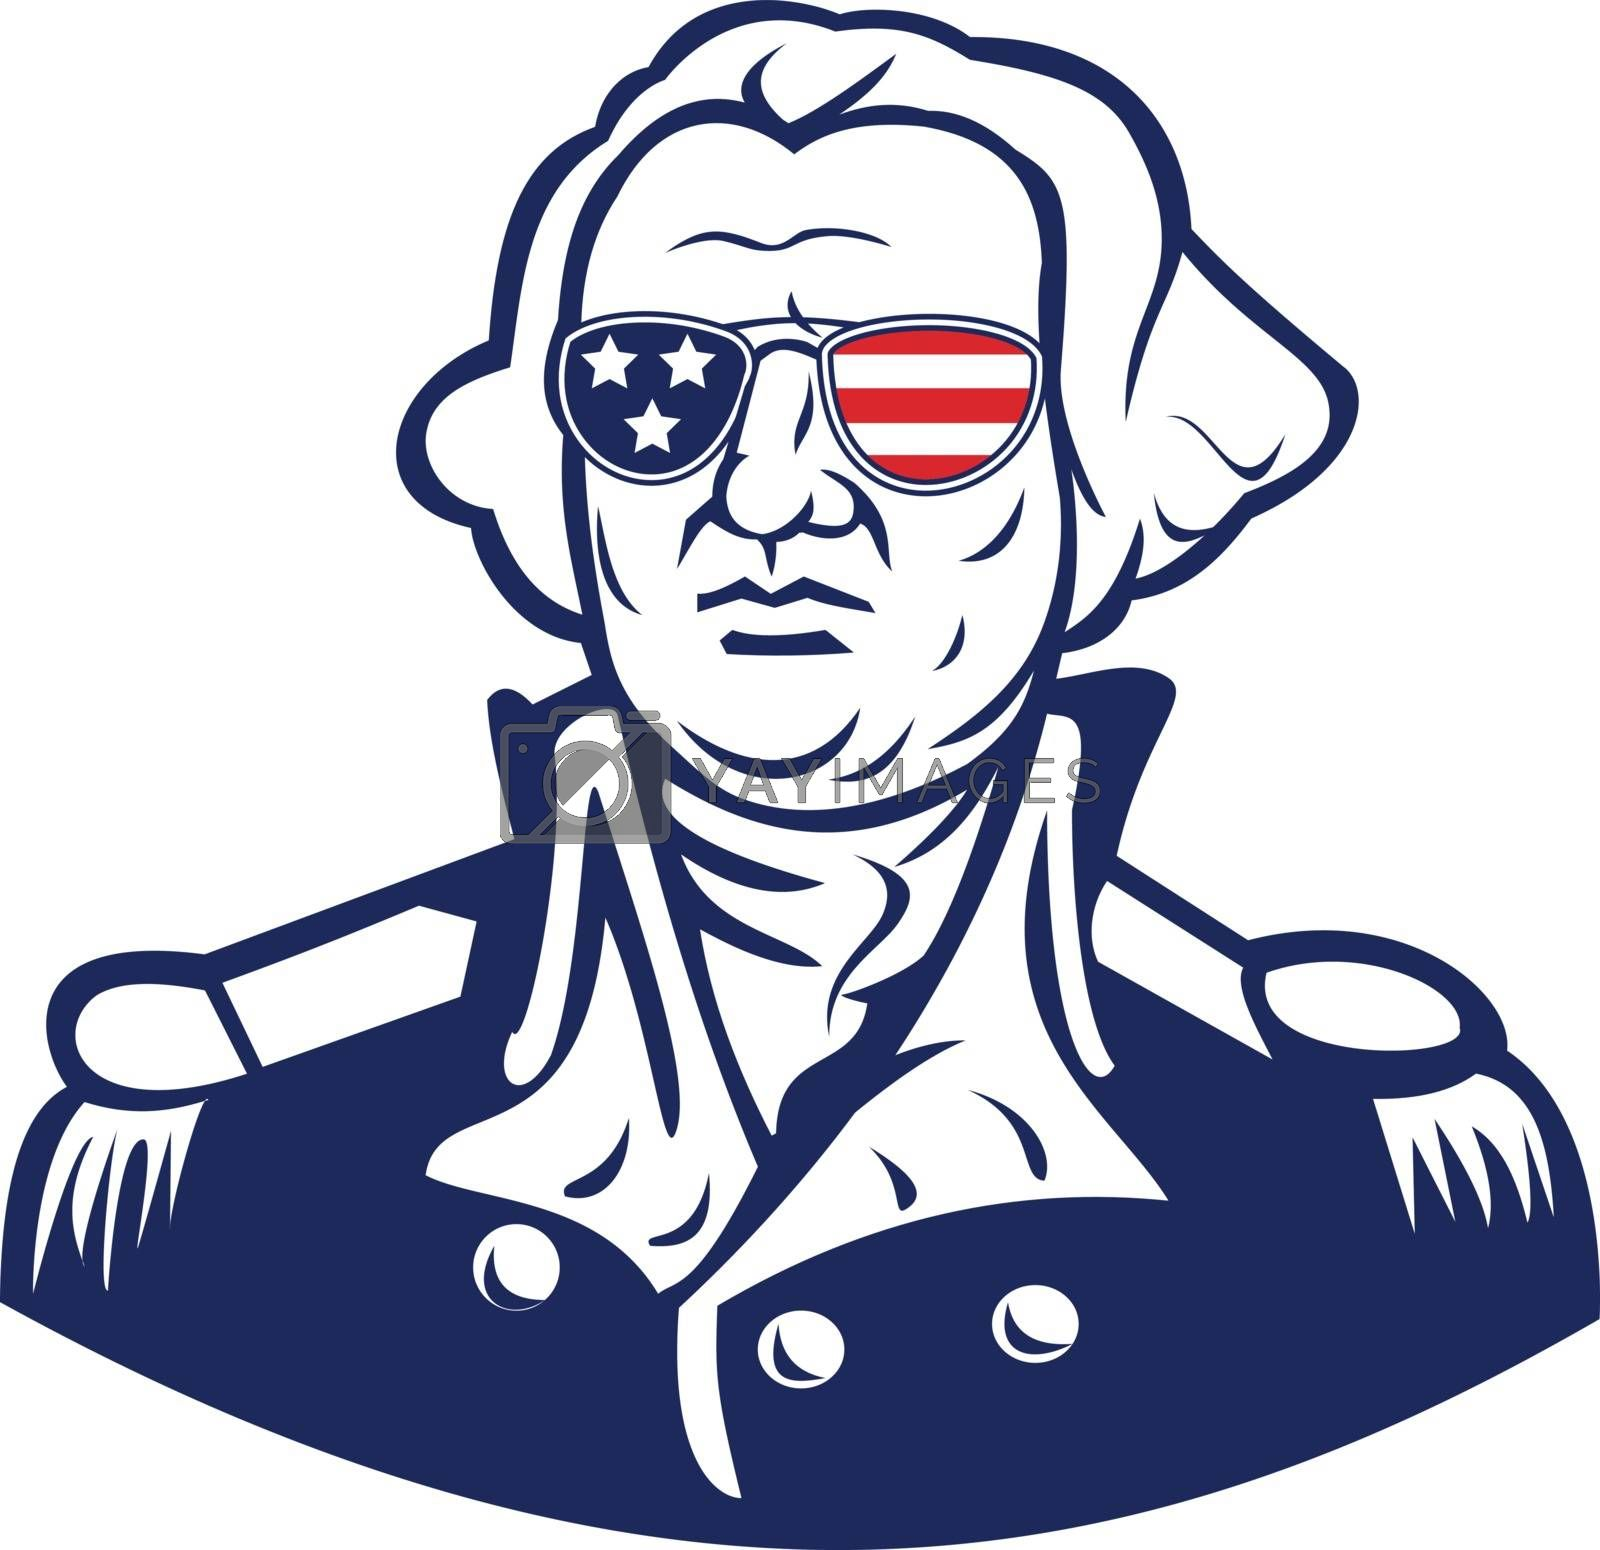 Washington Wearing Sunglasses USA Flag Mascot by patrimonio